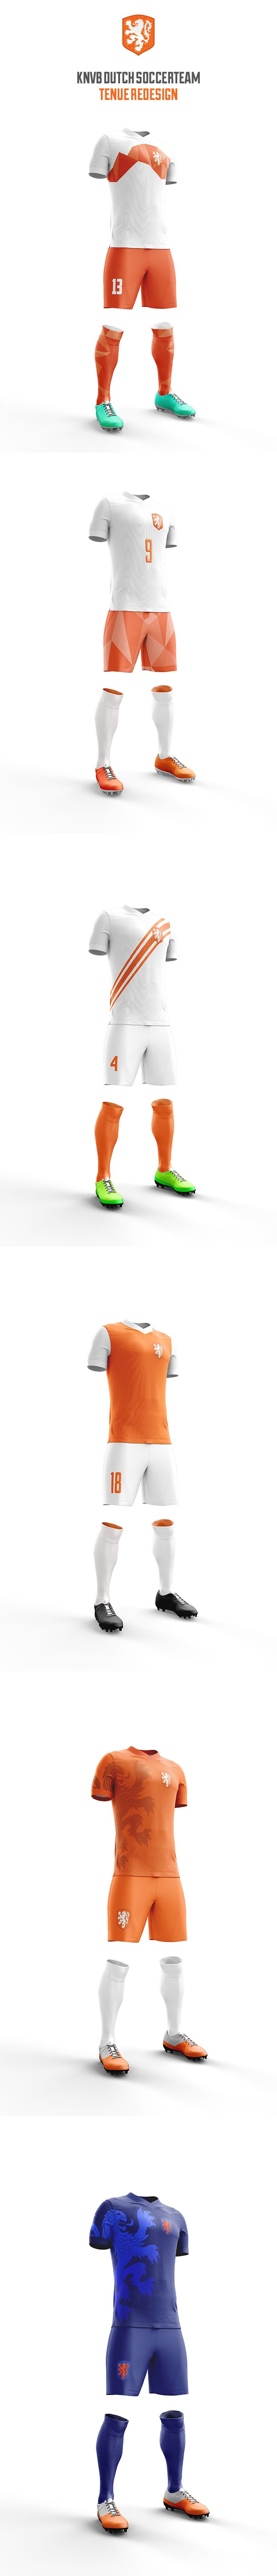 Redesign Dutch soccer tenue on Behance